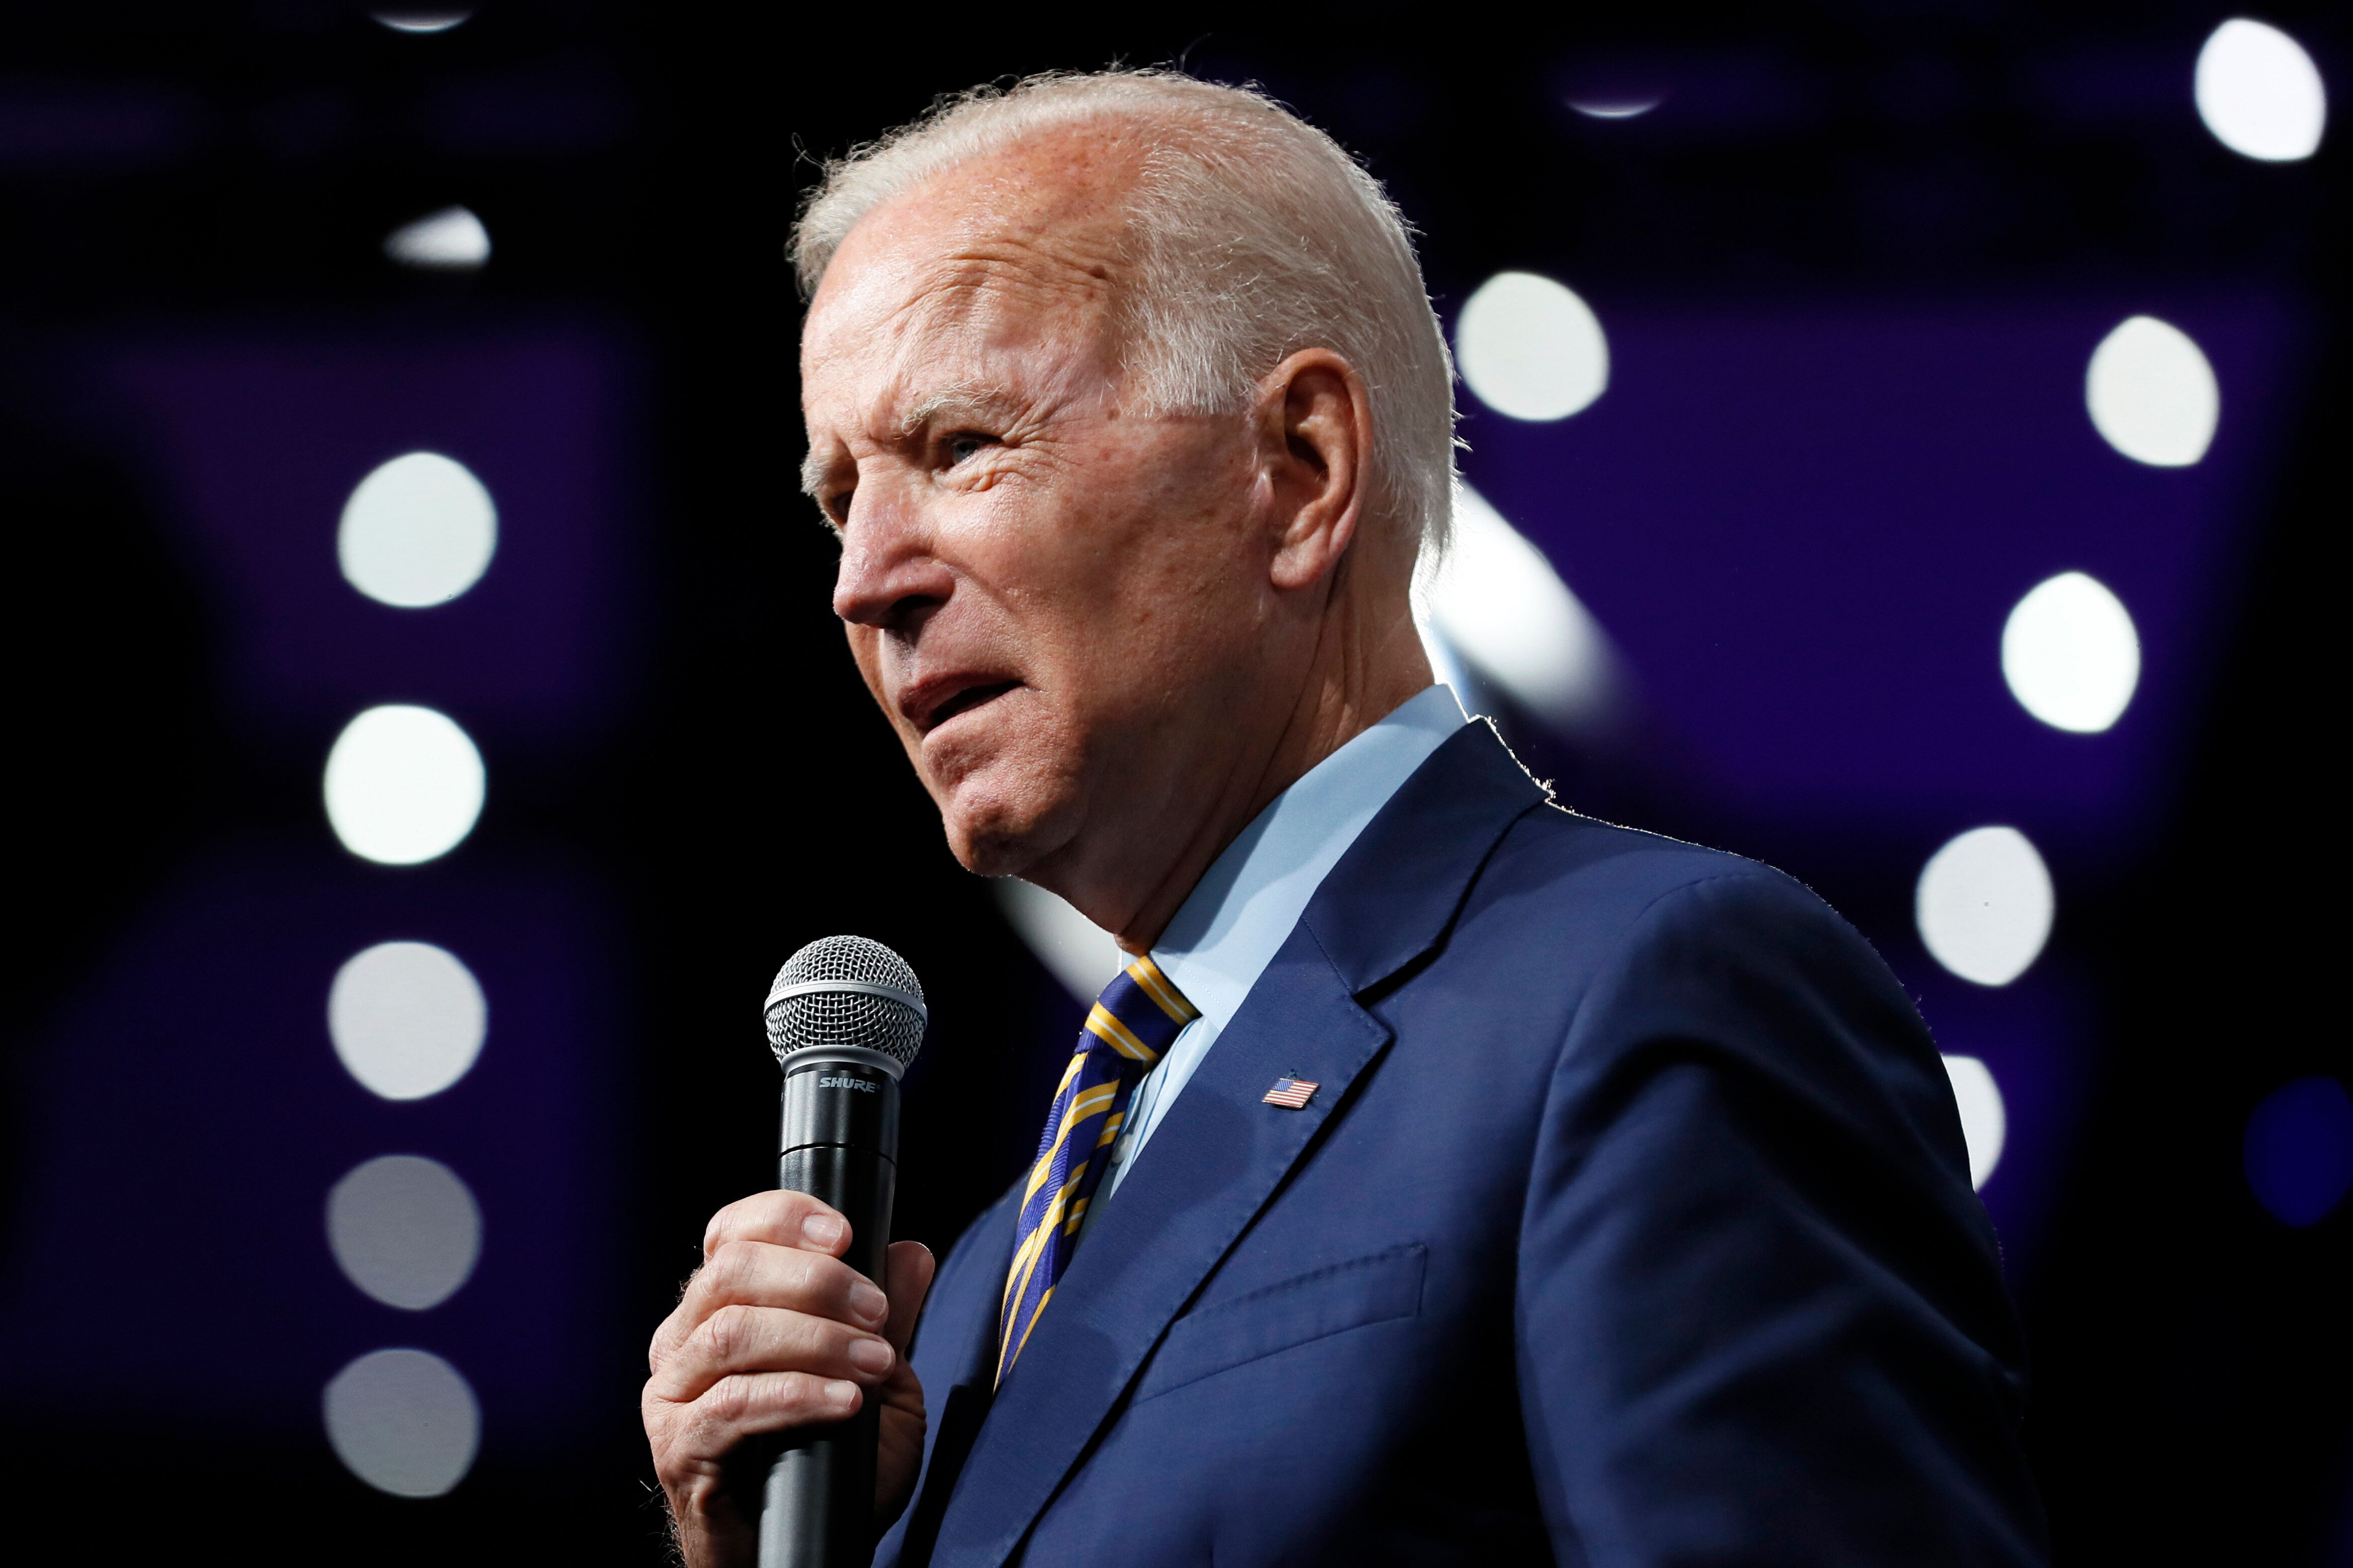 Former Vice President Joe Biden has shifted his position on impeaching President Donald Trump.